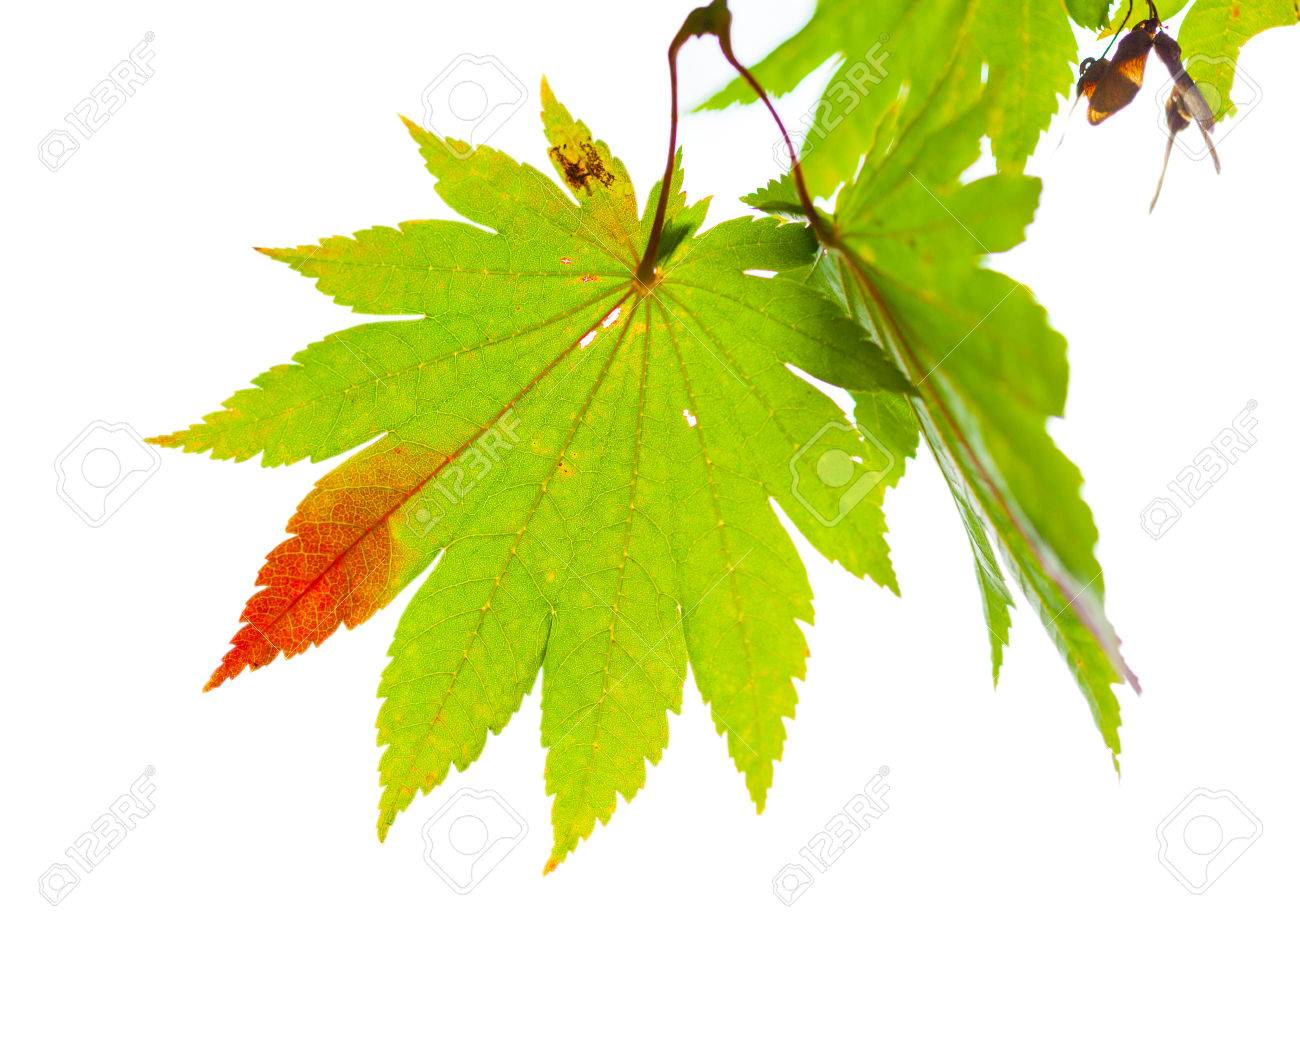 Japanese Maple Leaves Change Its Color From Green To Red In Autumn ...